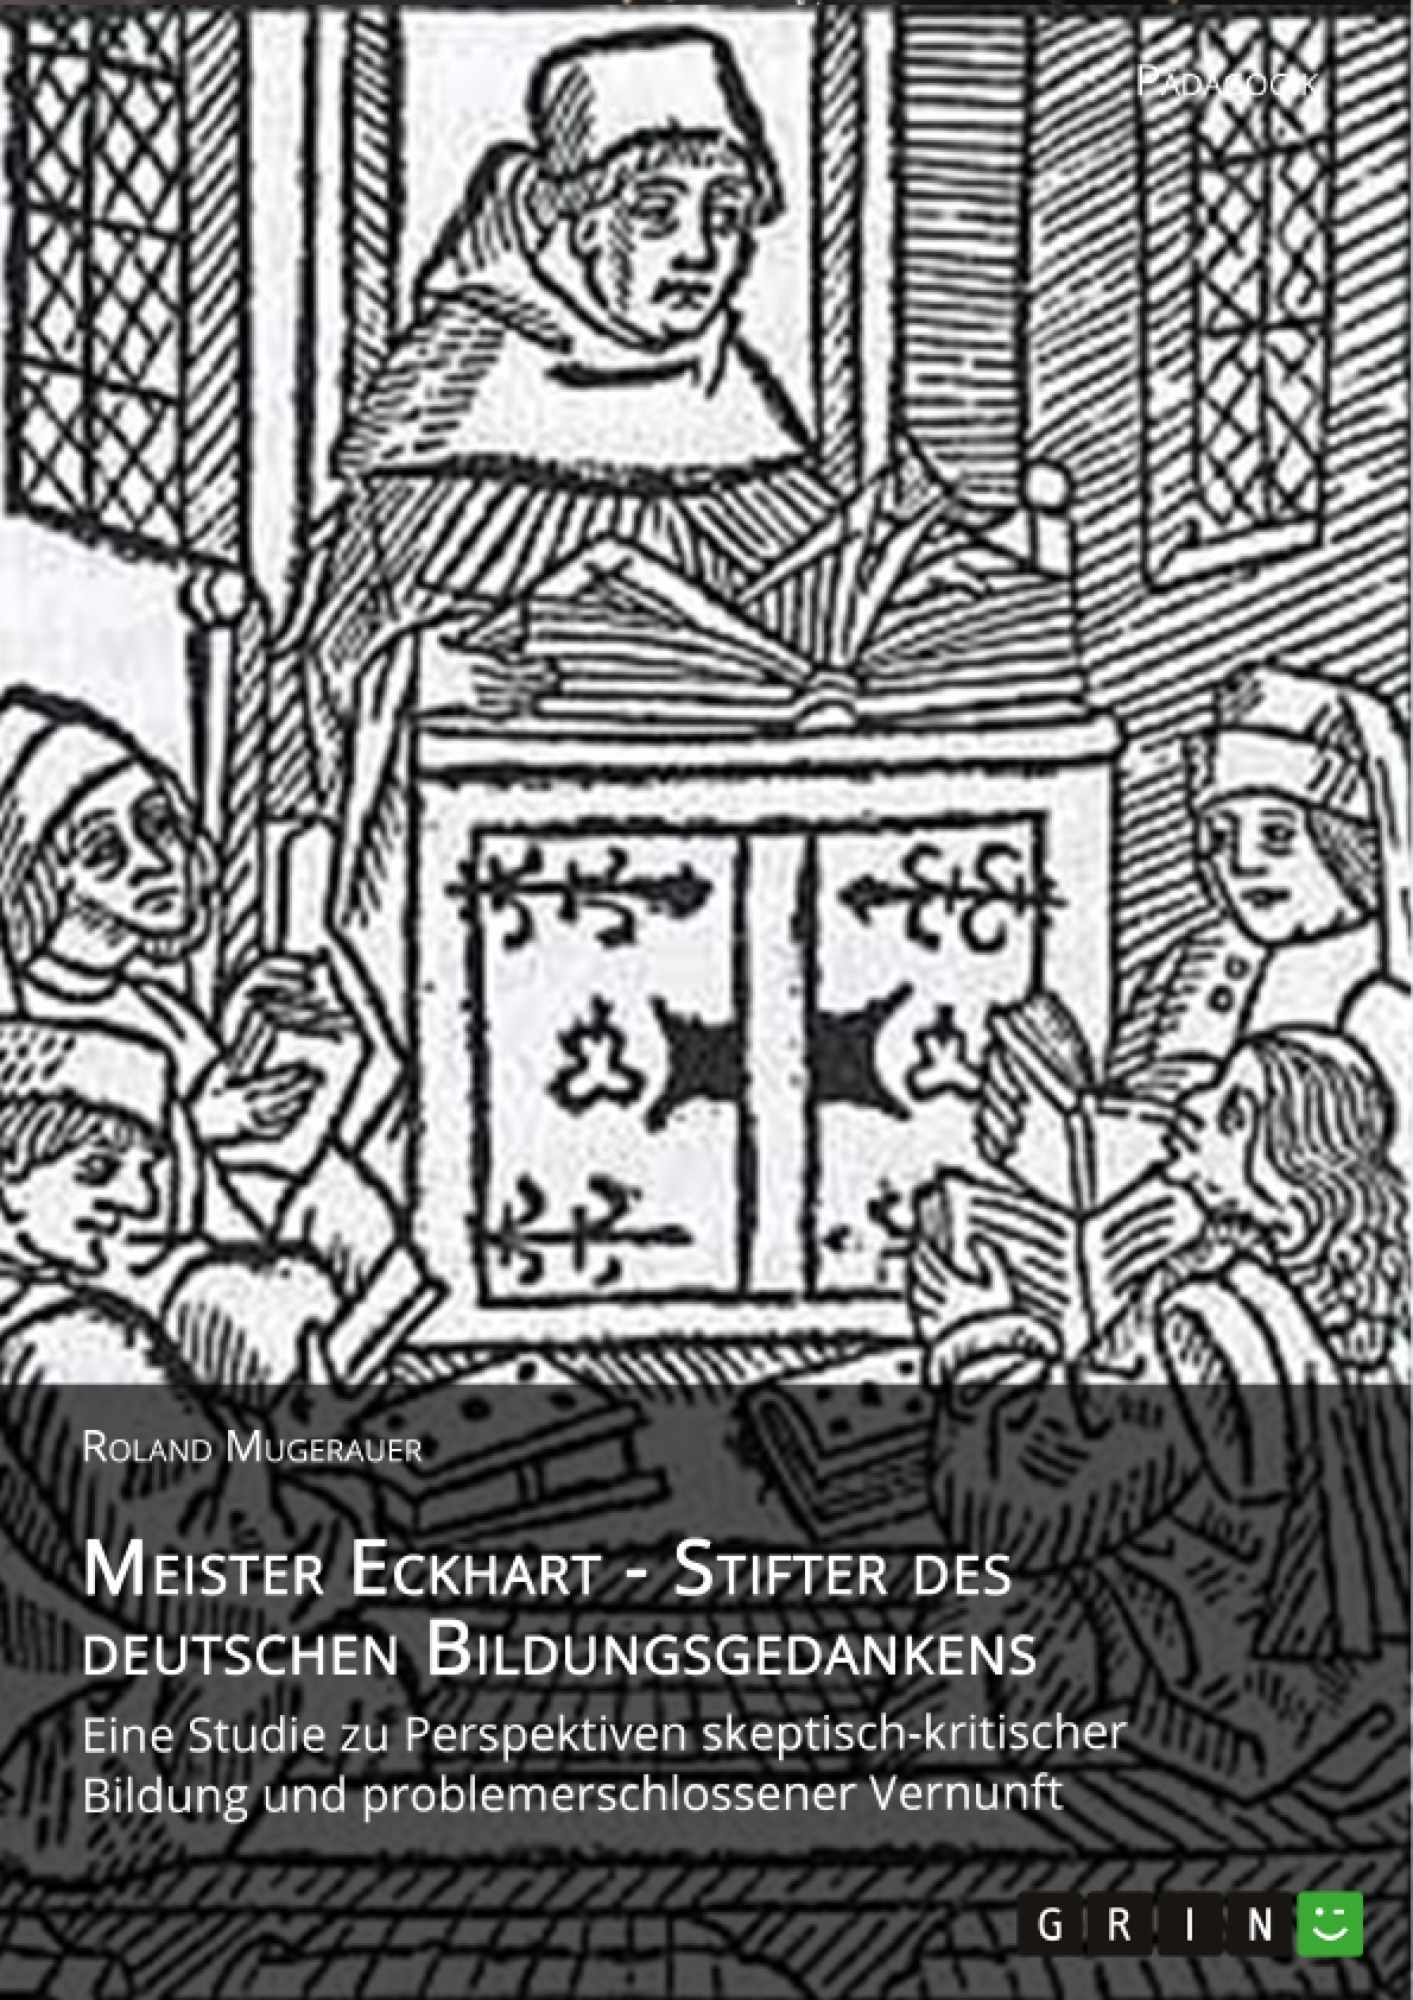 meister eckhart essay What might a medieval german mystic offer spiritual seekers today this essay is a personal reflection on the teachings of the fourteenth-century dominican philosopher and theologian, meister eckhart, who offers a deeply refreshing perspective on human spirituality, particularly for those like me who have long thirsted for a draught more satisfying than that on offer from many.